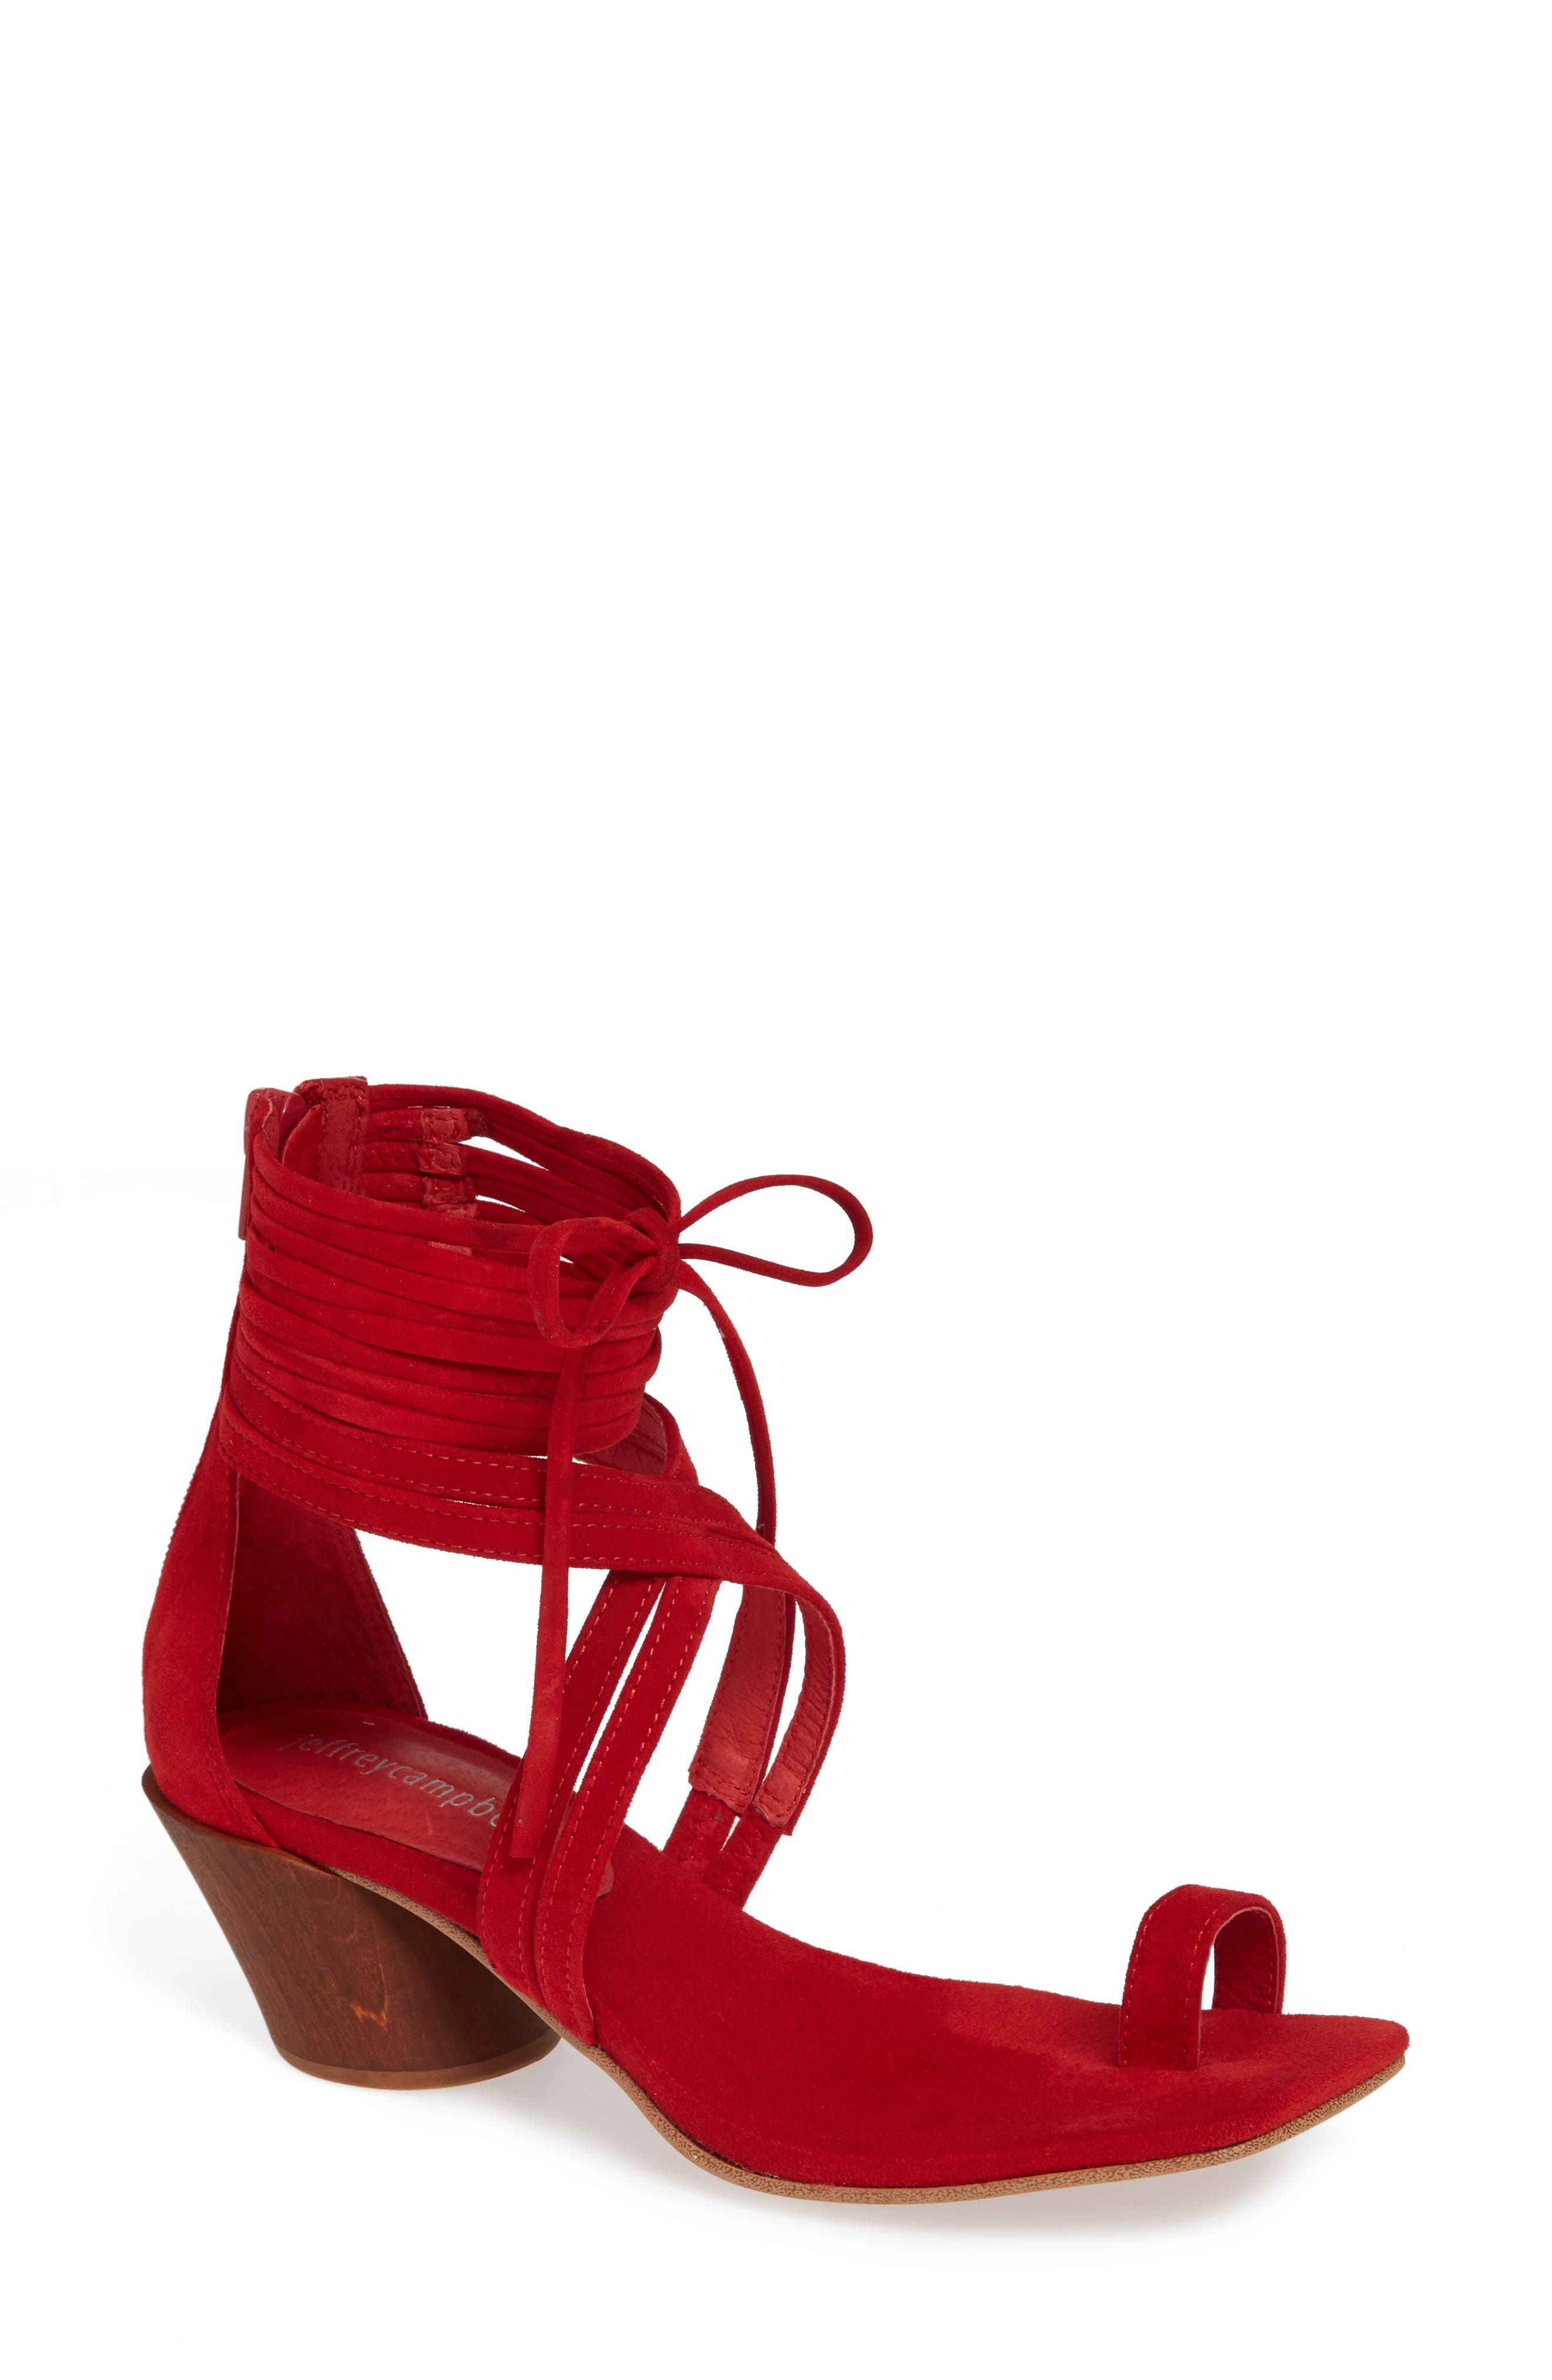 Jeffrey Campbell Rowen Sandal, Red